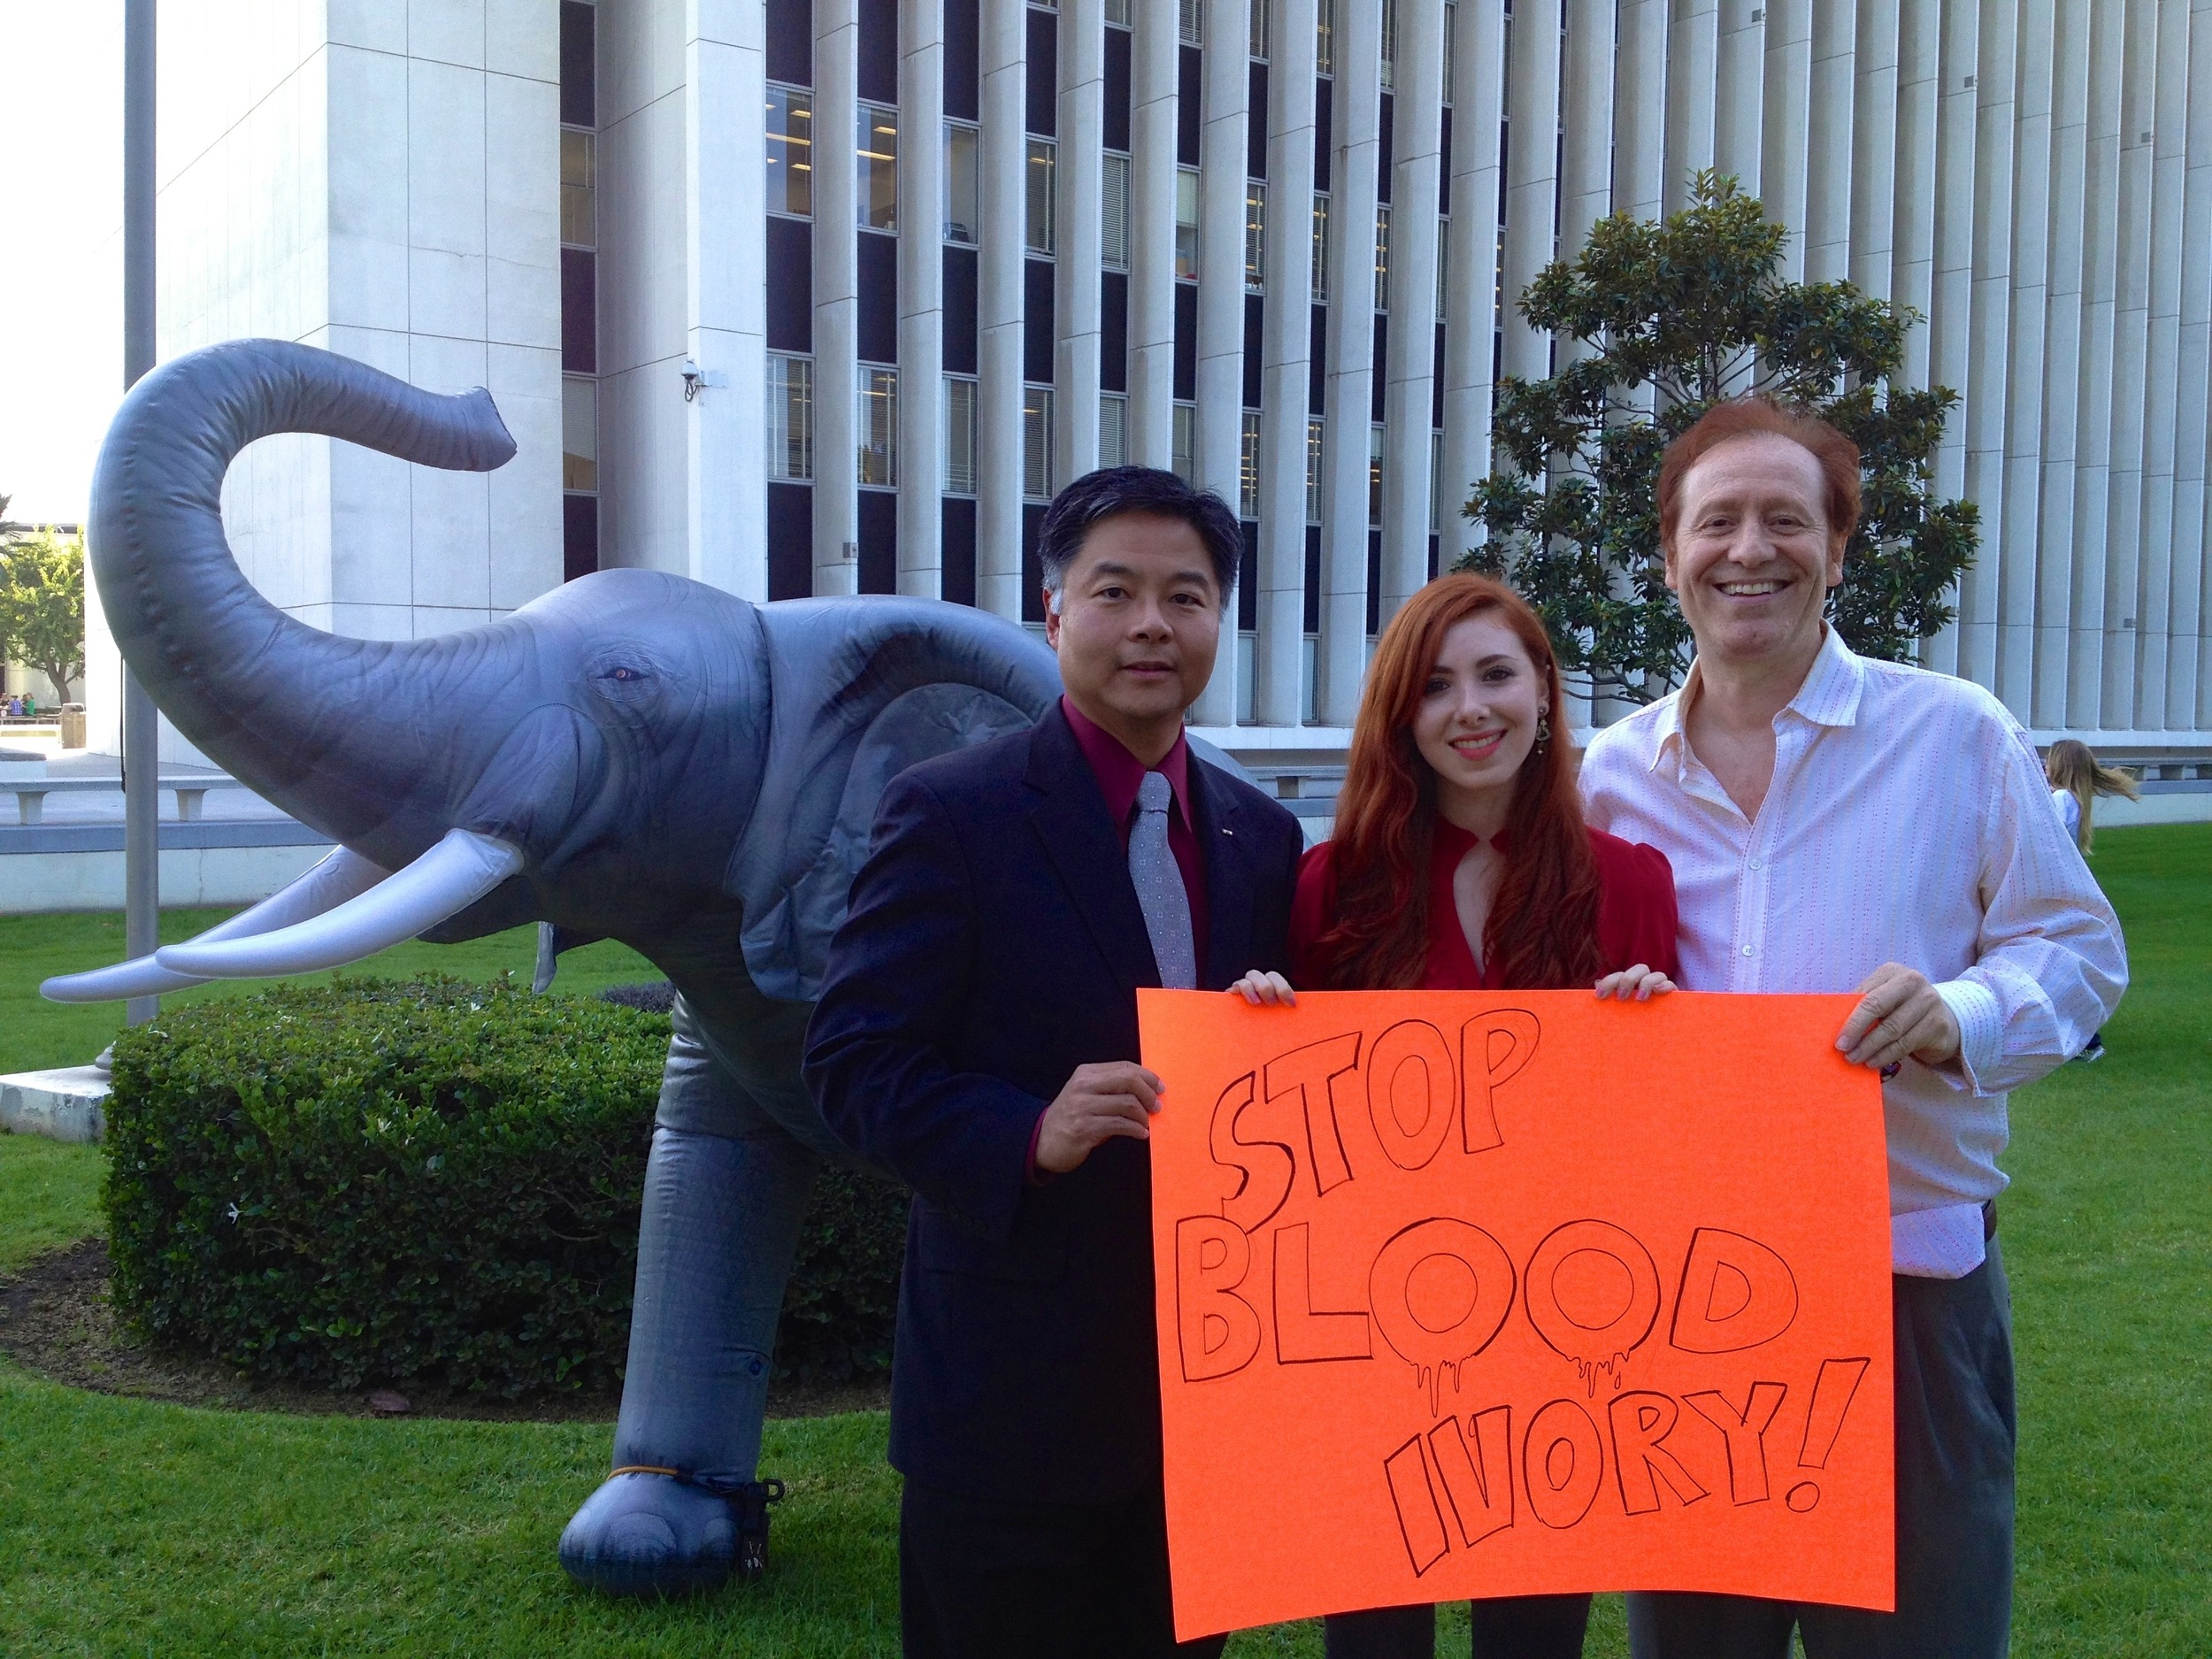 Congressman Ted Lieu supports curbing ivory demand in US & Asia